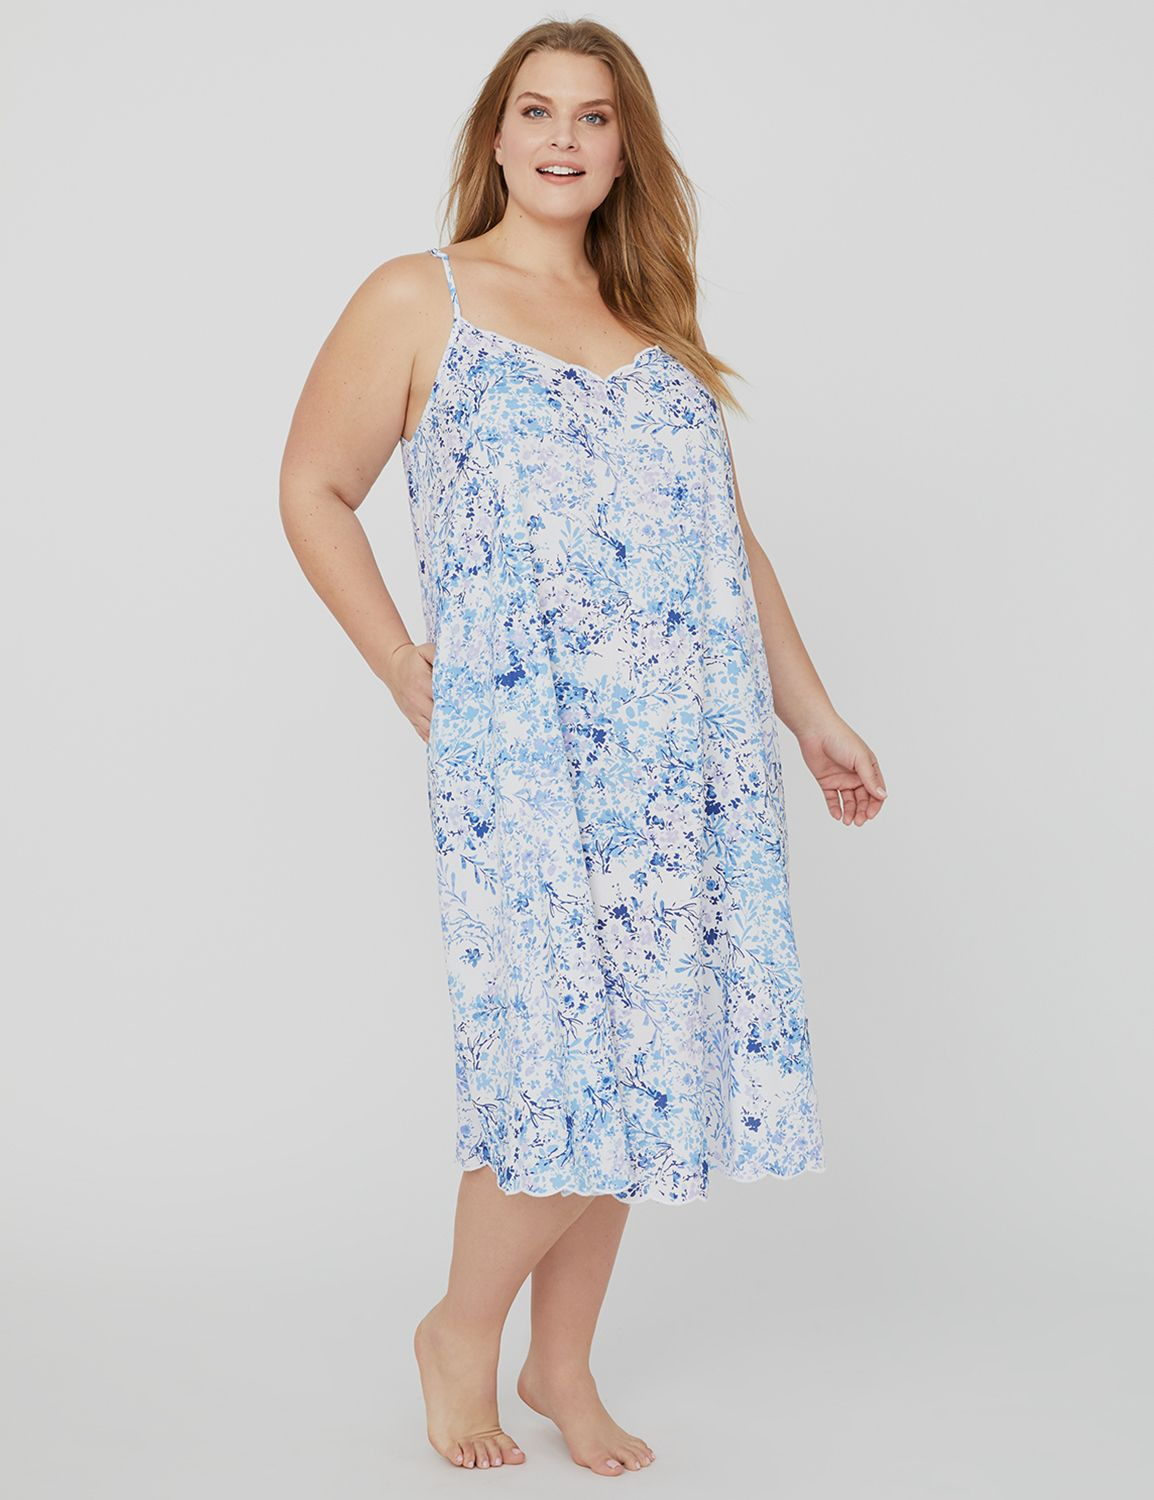 Scalloped-Edge Sleep Gown 1088493- Printed Challis Woven Midi MP-300096246